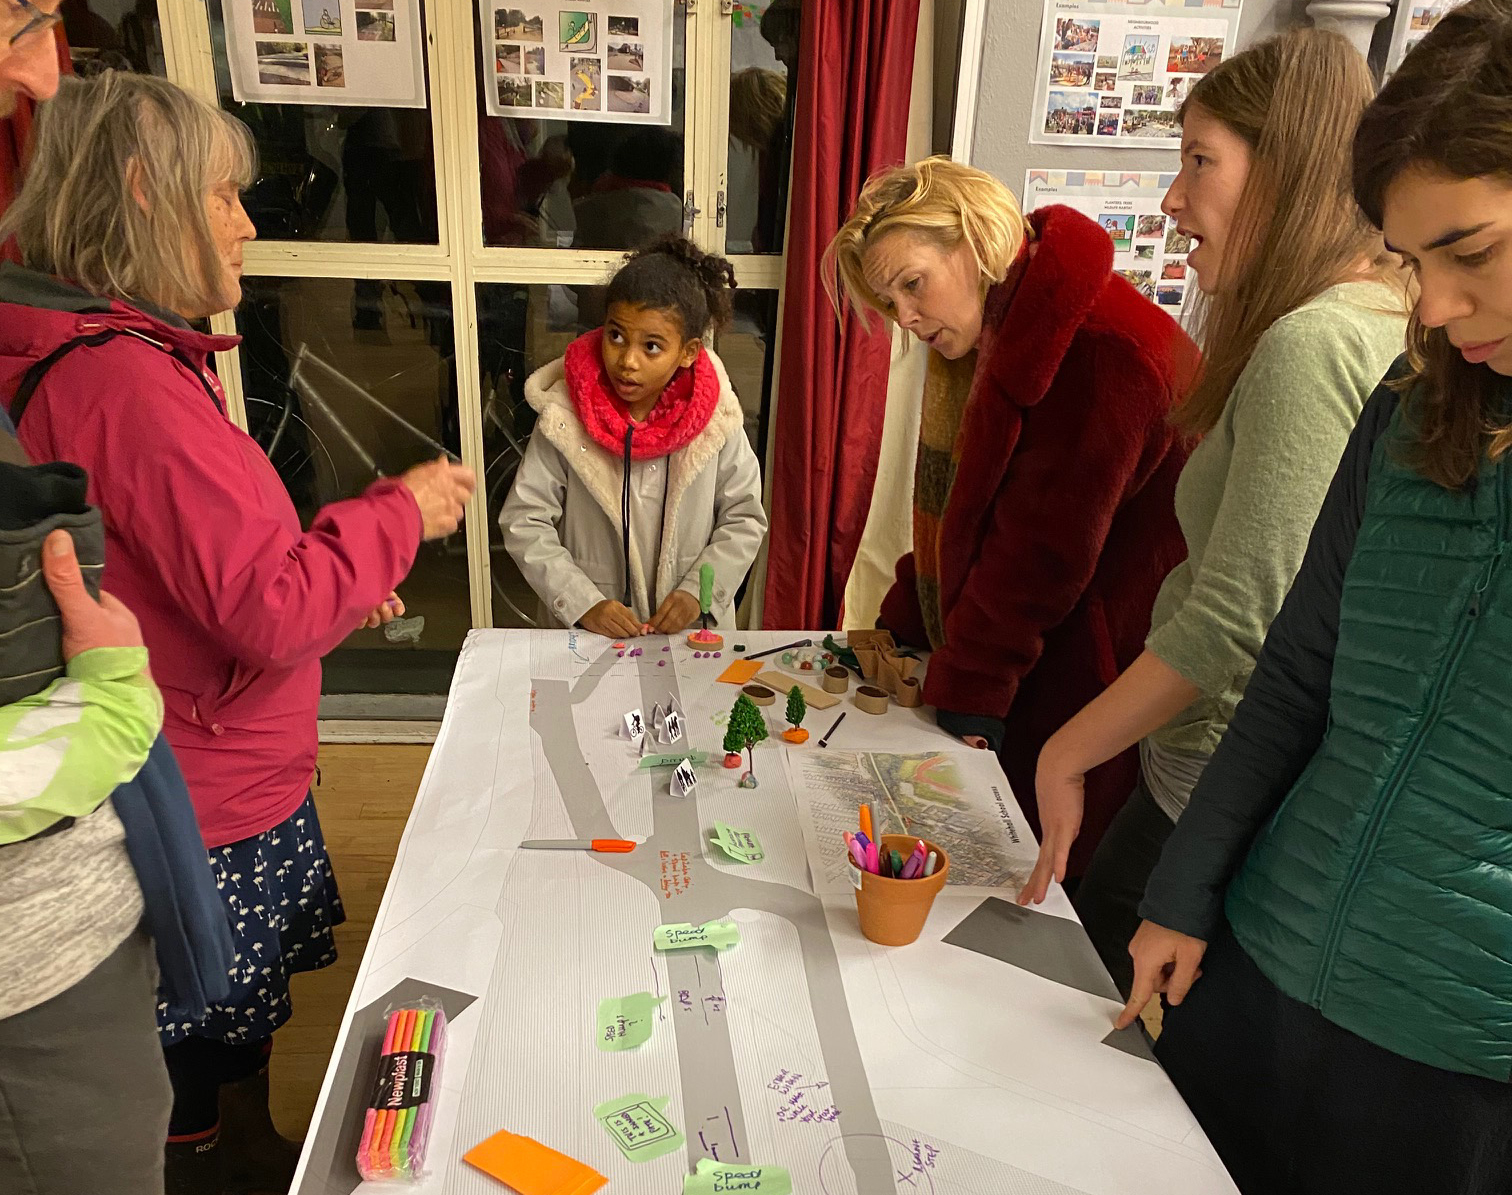 Adding design ideas to part of the path at a community workshop. Picture: Sustrans